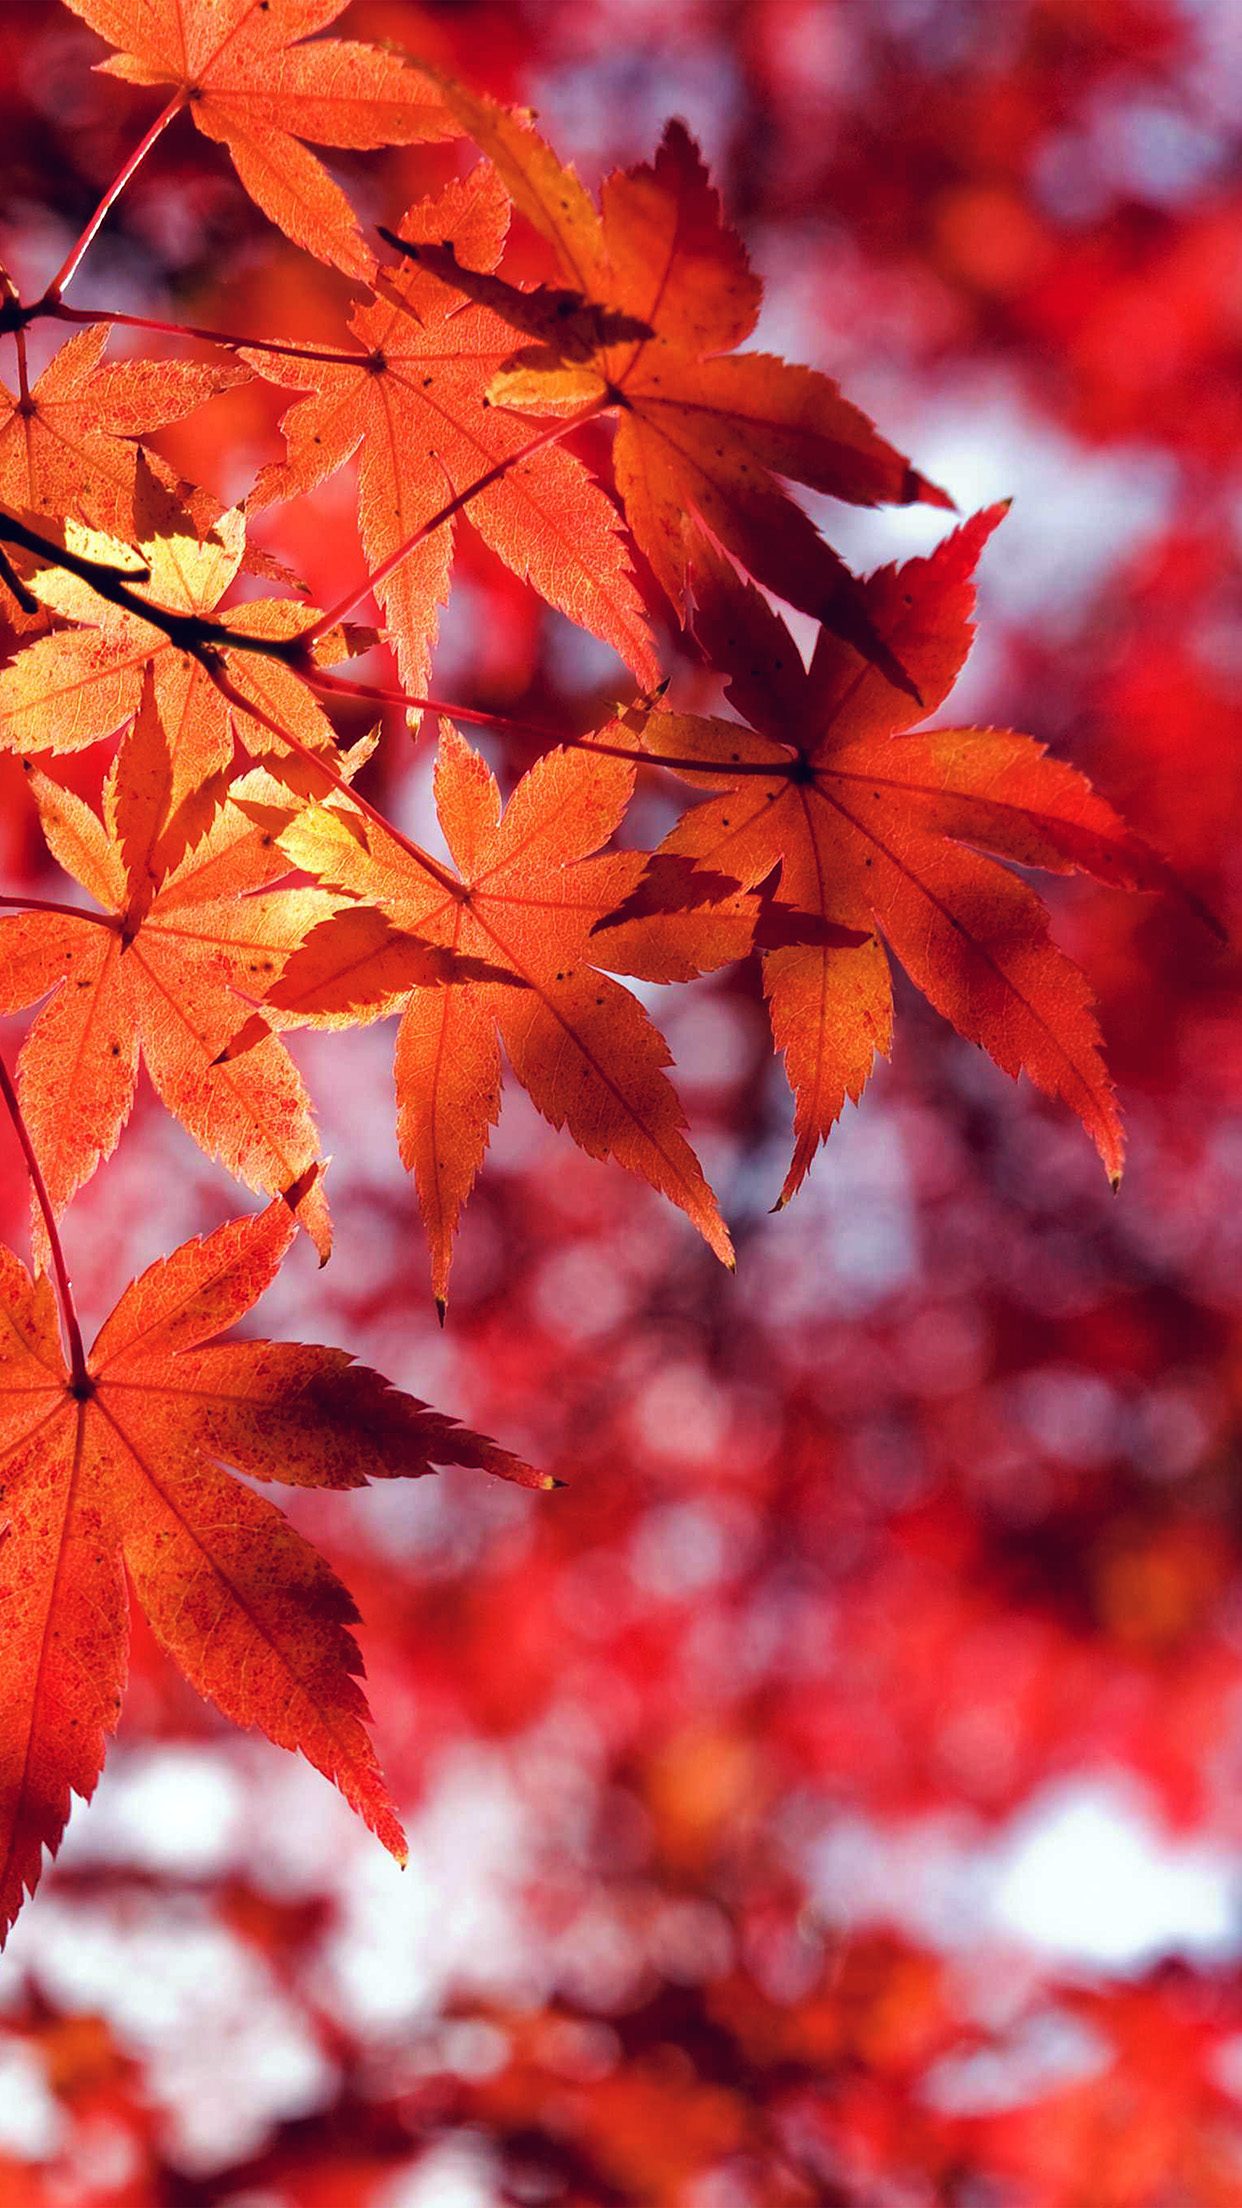 Falling Leaves Wallpaper For Iphone Mt33 Fall Leaf Red Mountain Bokeh Papers Co